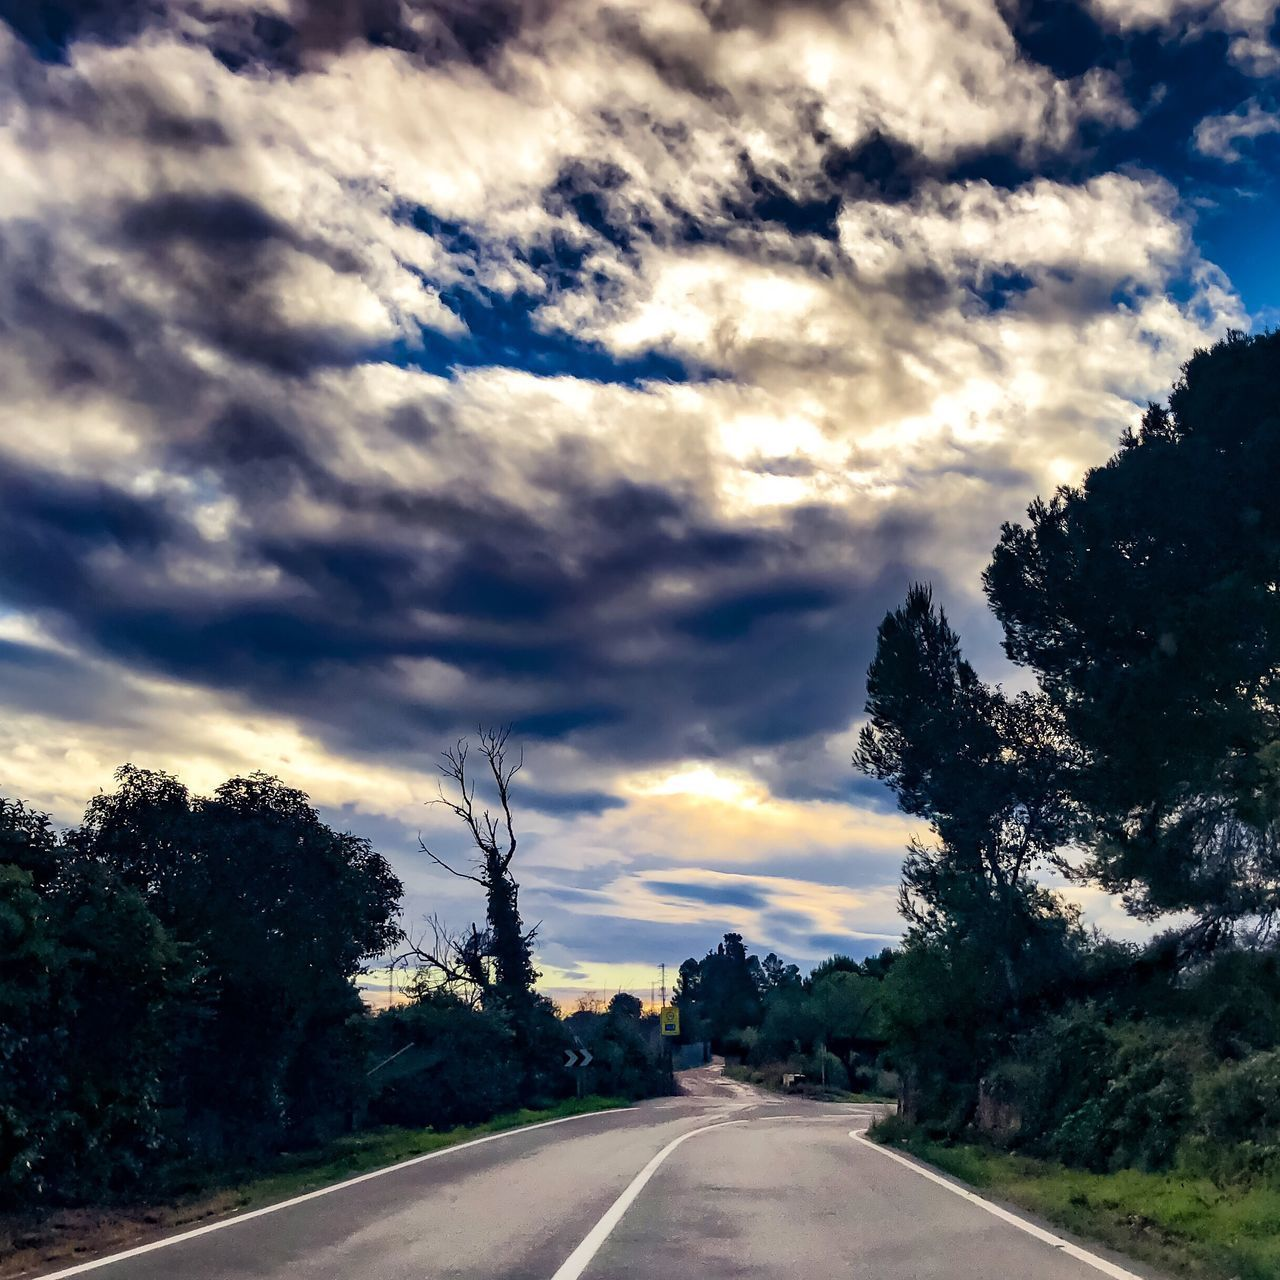 road, cloud - sky, tree, sky, transportation, direction, plant, the way forward, nature, no people, sign, beauty in nature, tranquil scene, tranquility, symbol, diminishing perspective, road marking, marking, landscape, scenics - nature, outdoors, dividing line